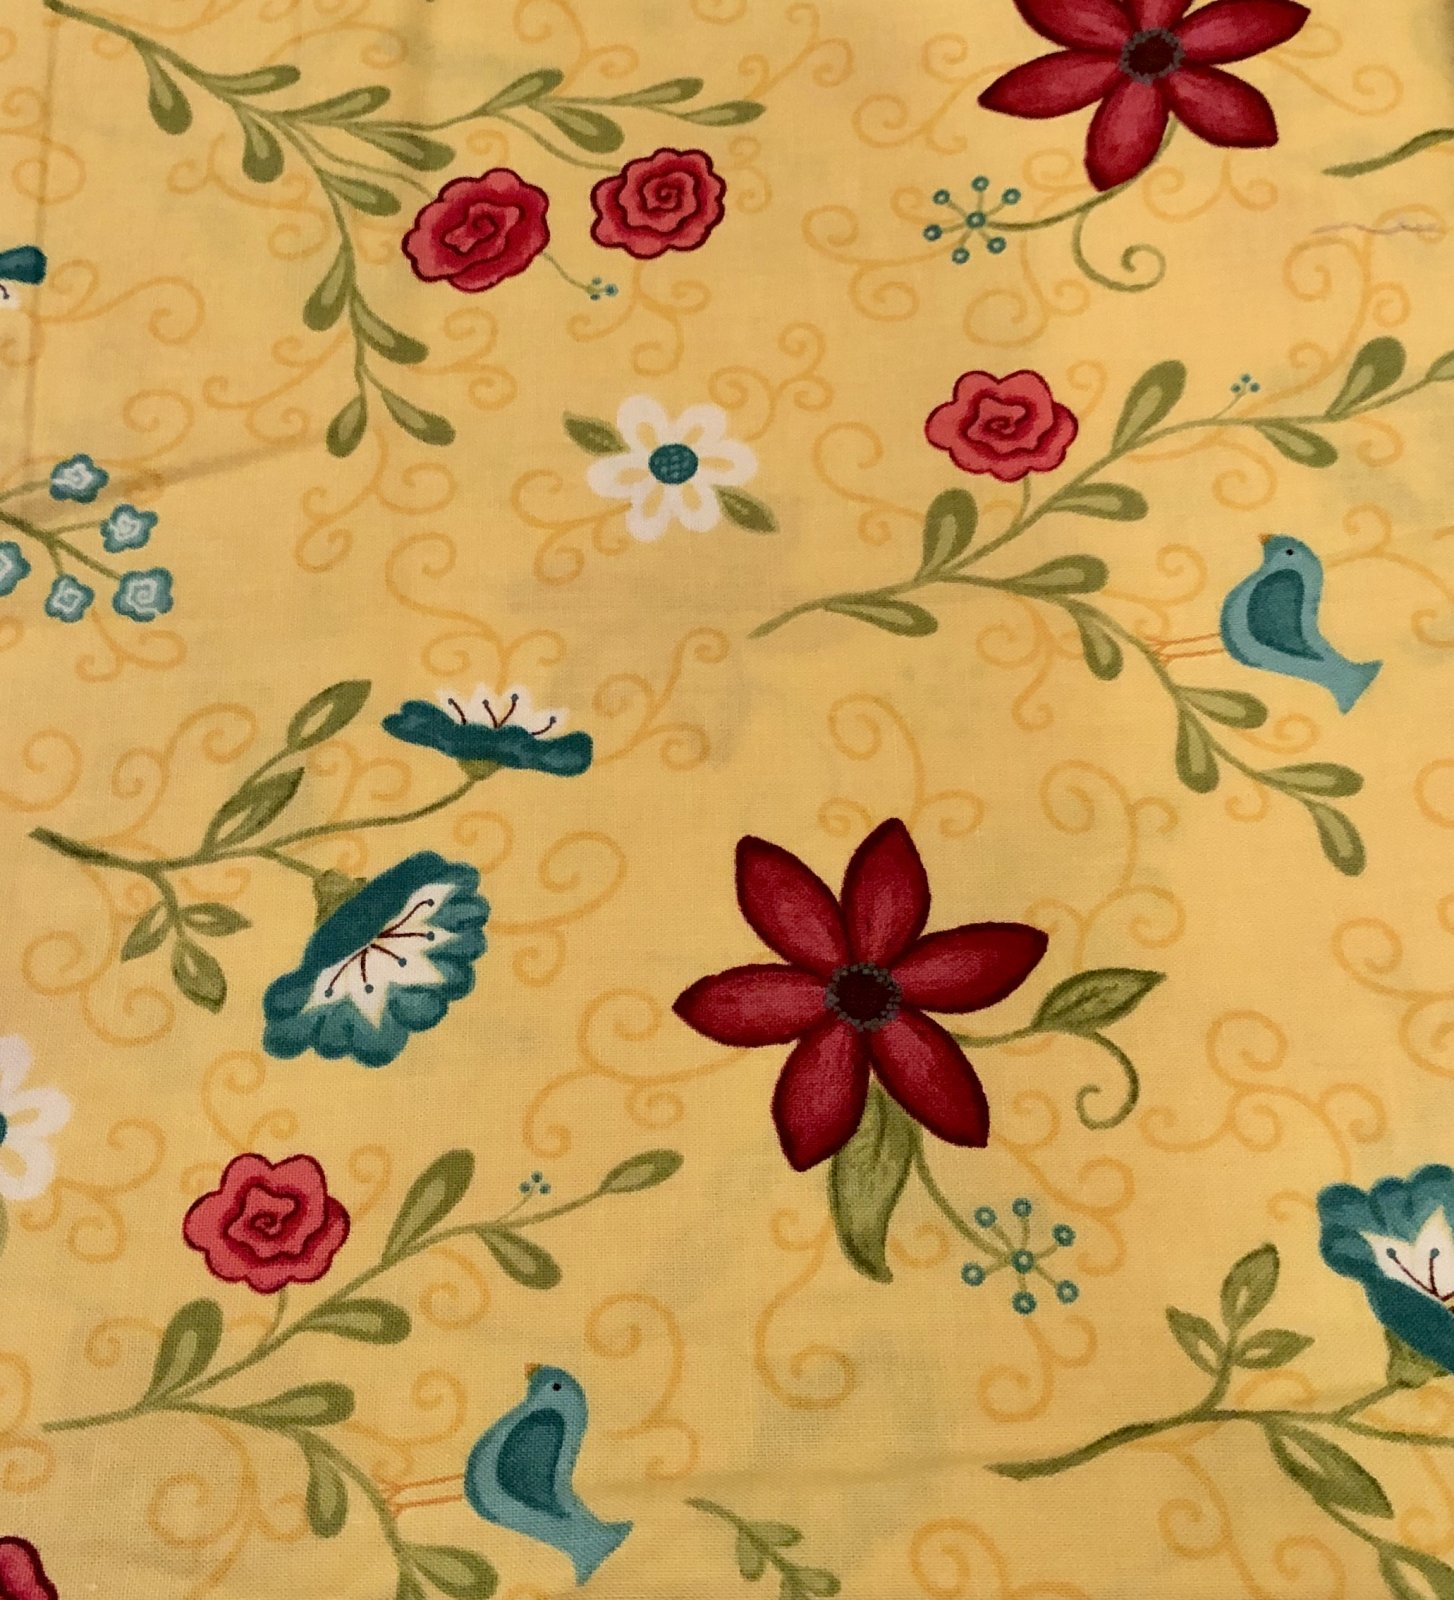 Wildflowers by Heather Mulder Peterson 2 yds